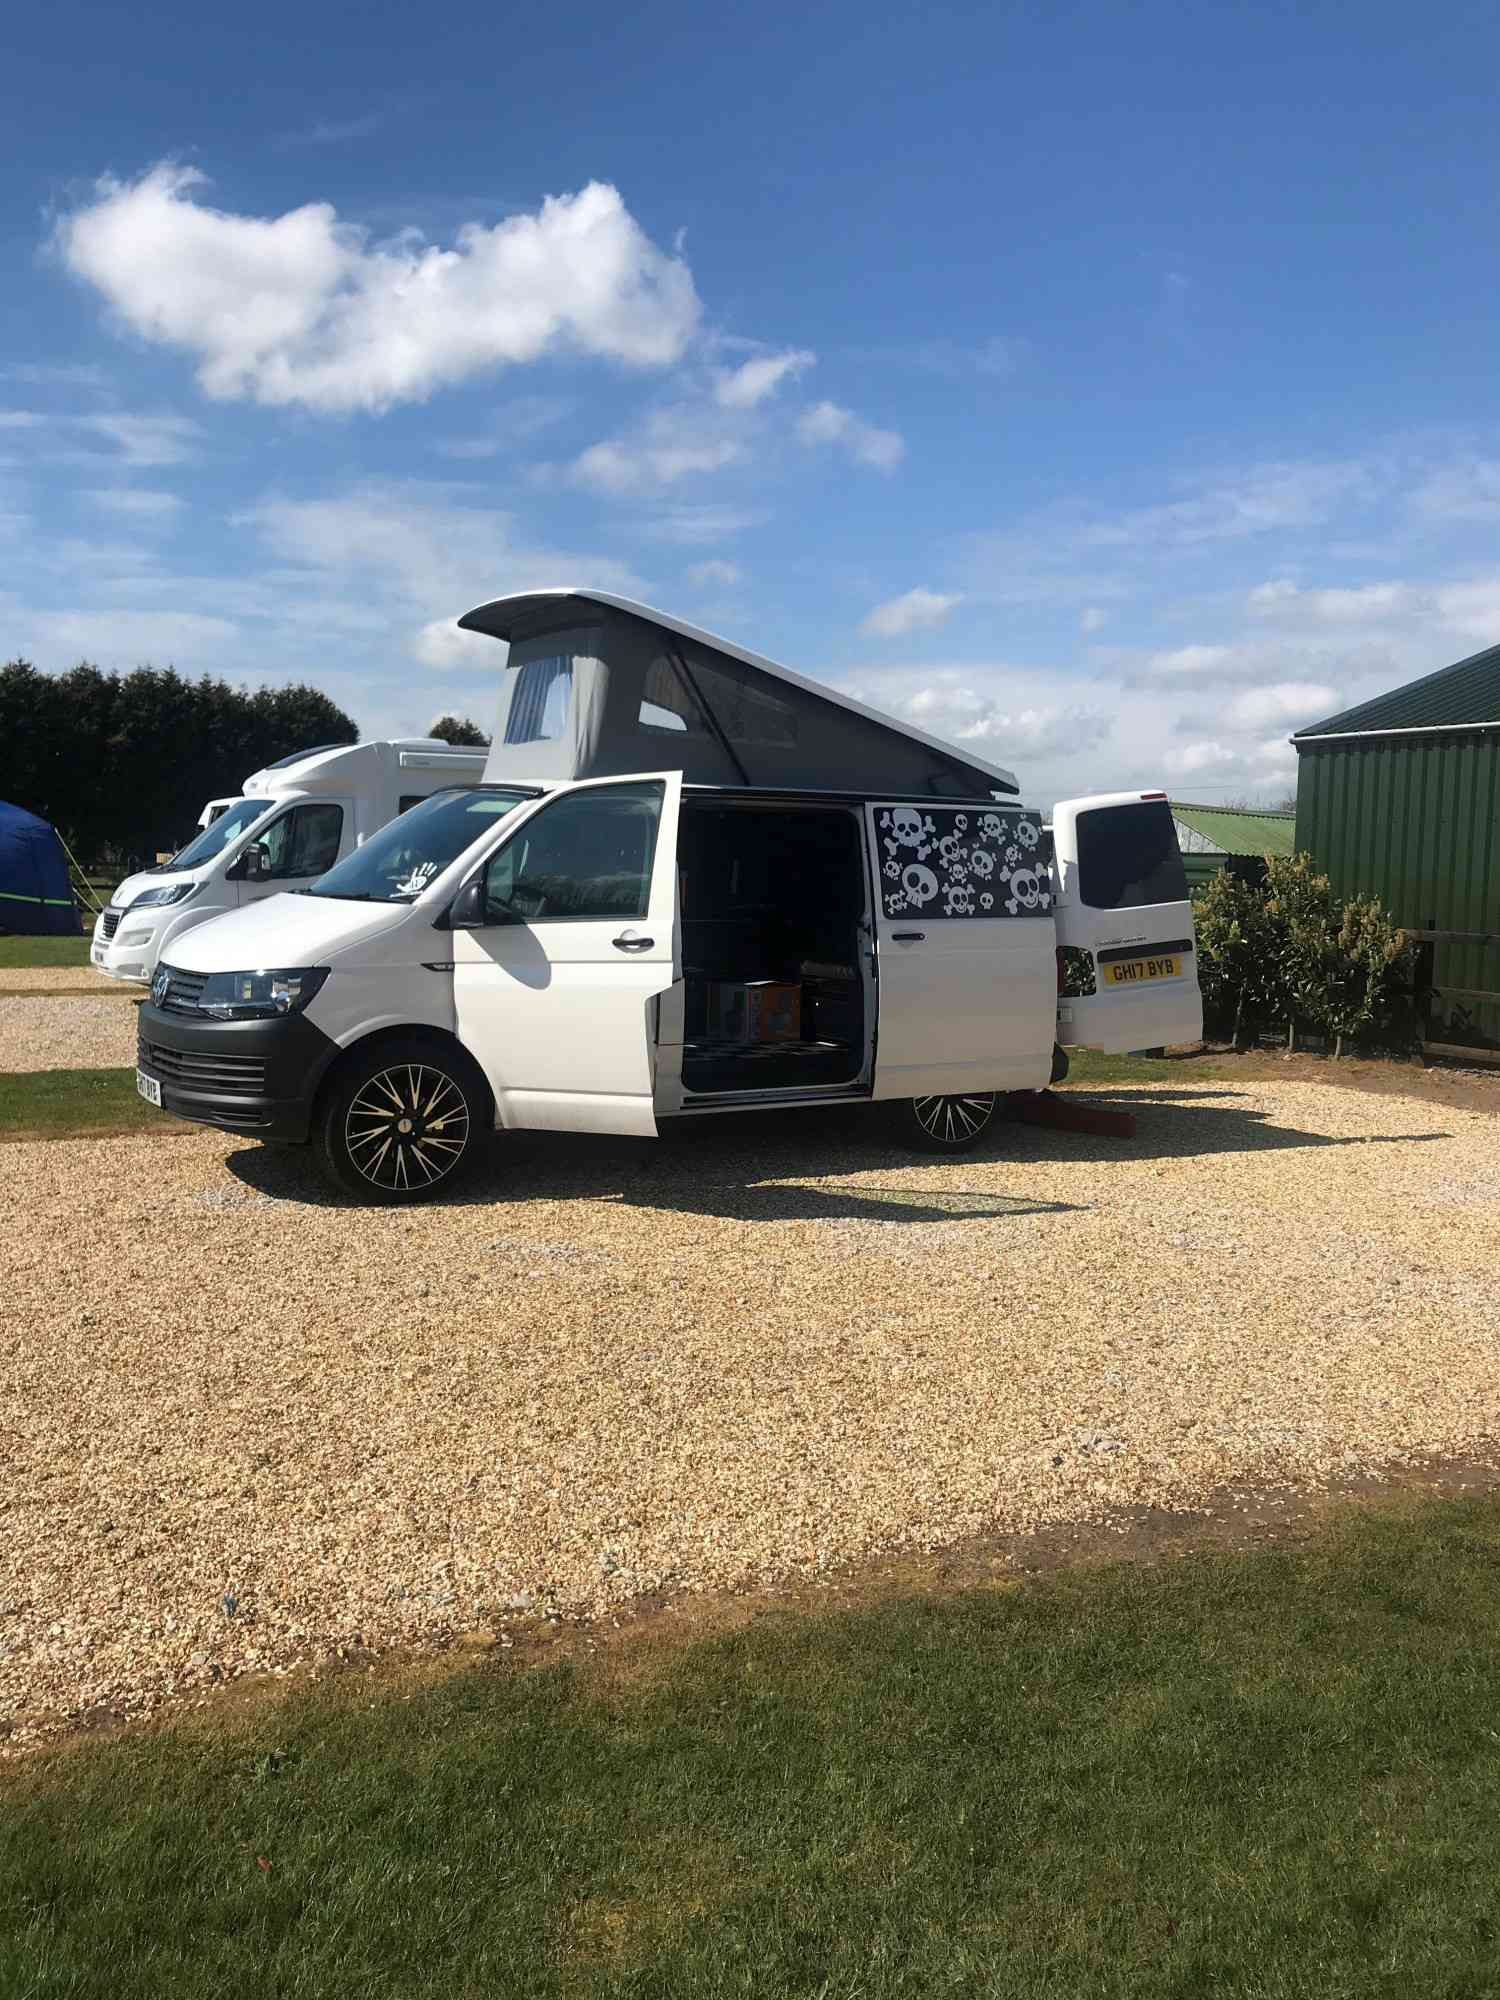 A VW T6 Campervan called Stubbs-the-V-Dub and for hire